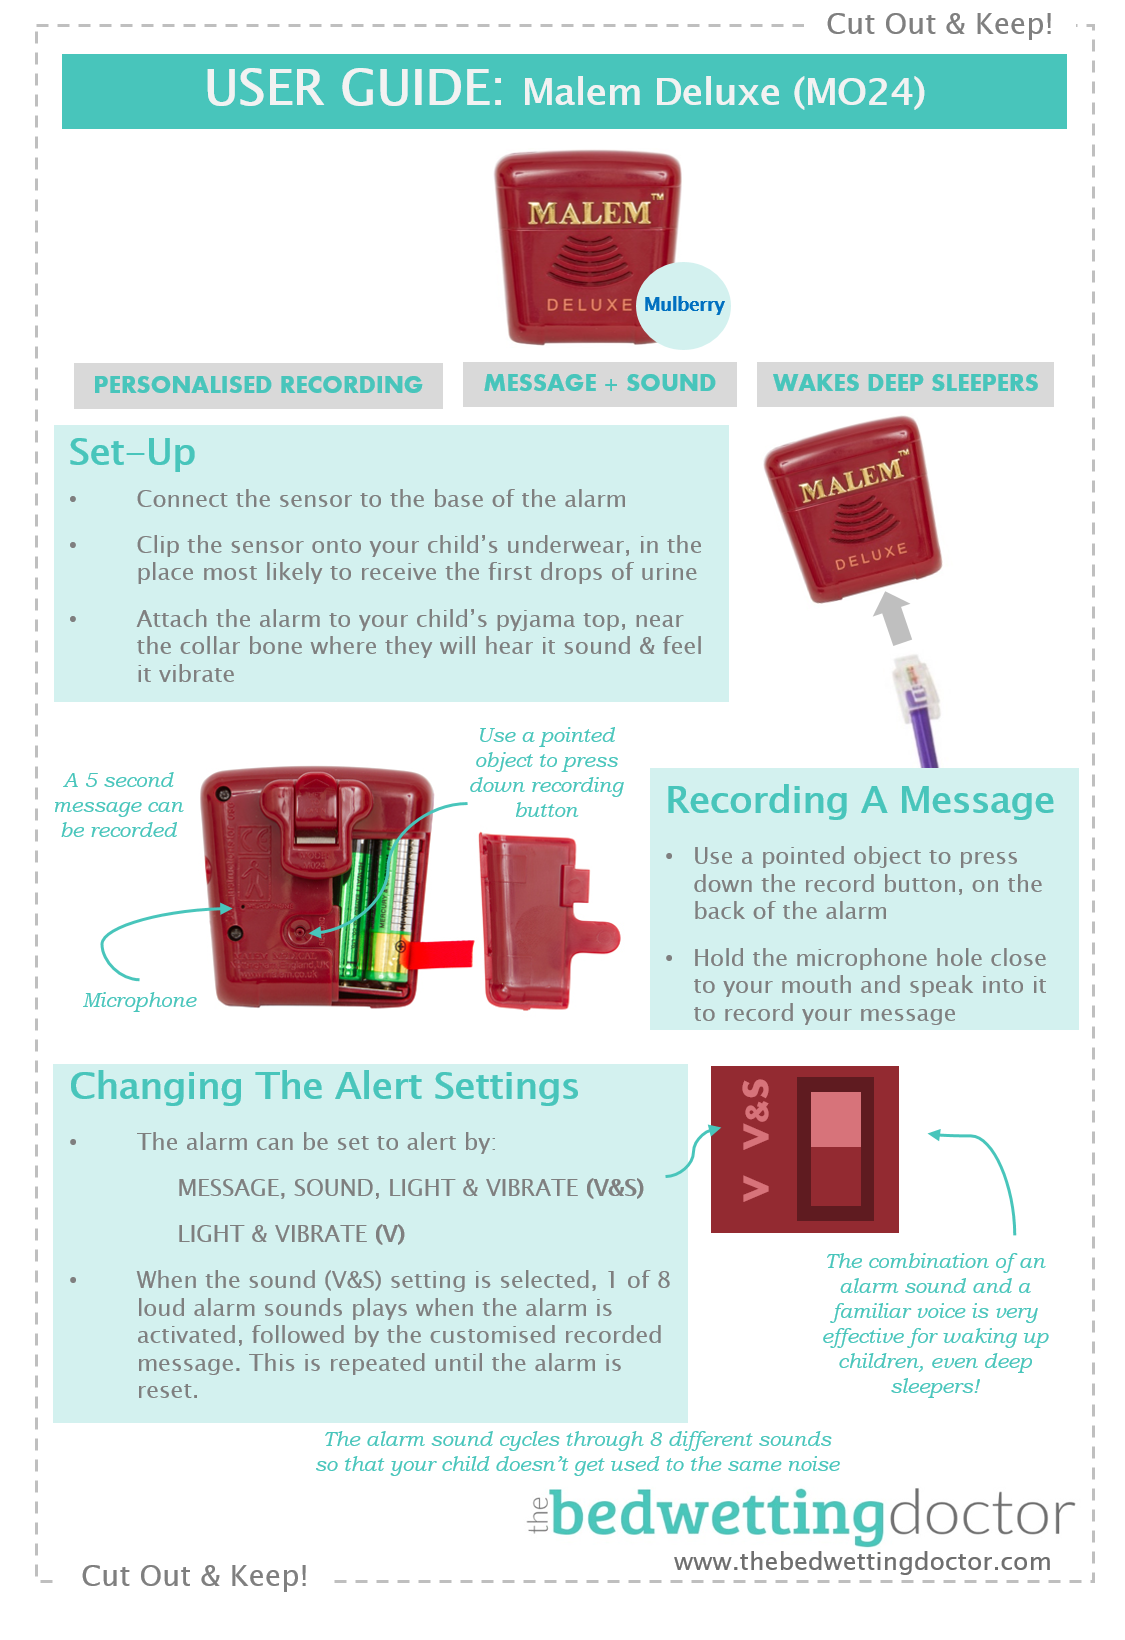 User Guide: Malem Deluxe (MO24) Bedwetting Alarm